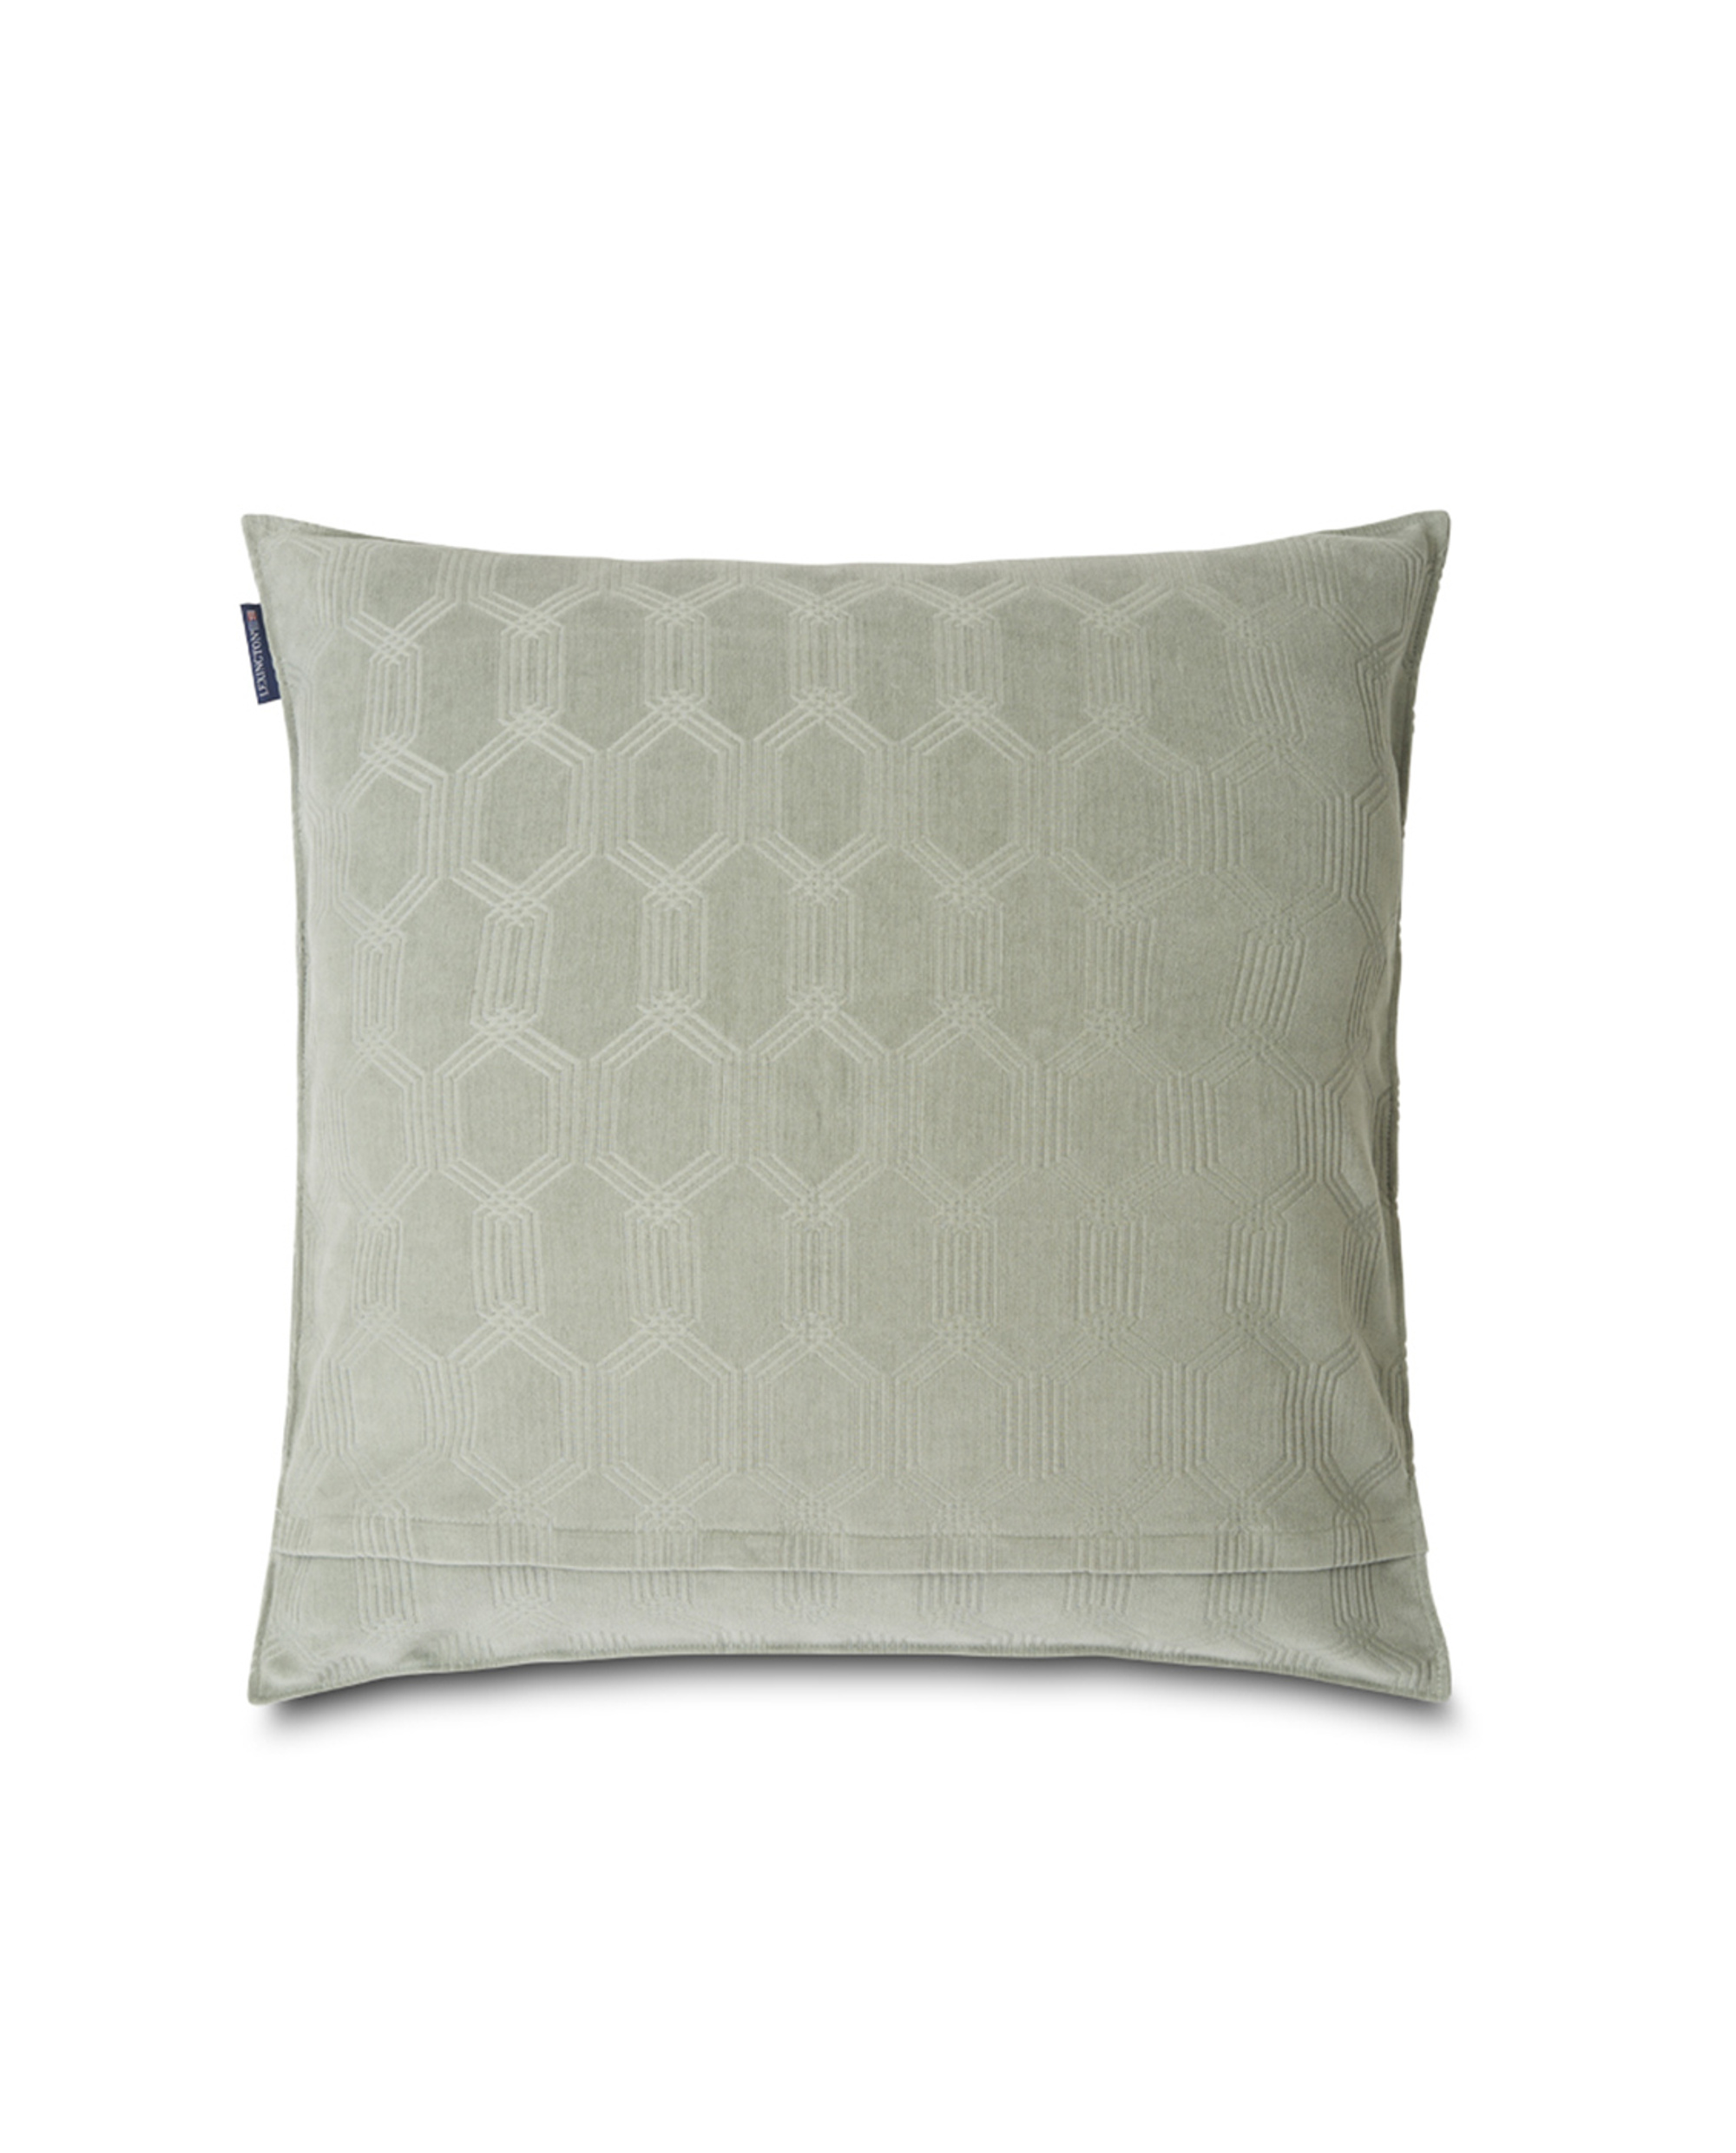 Jacquard Cotton Velvet Pillow Cover 65x65cm, Sage Green